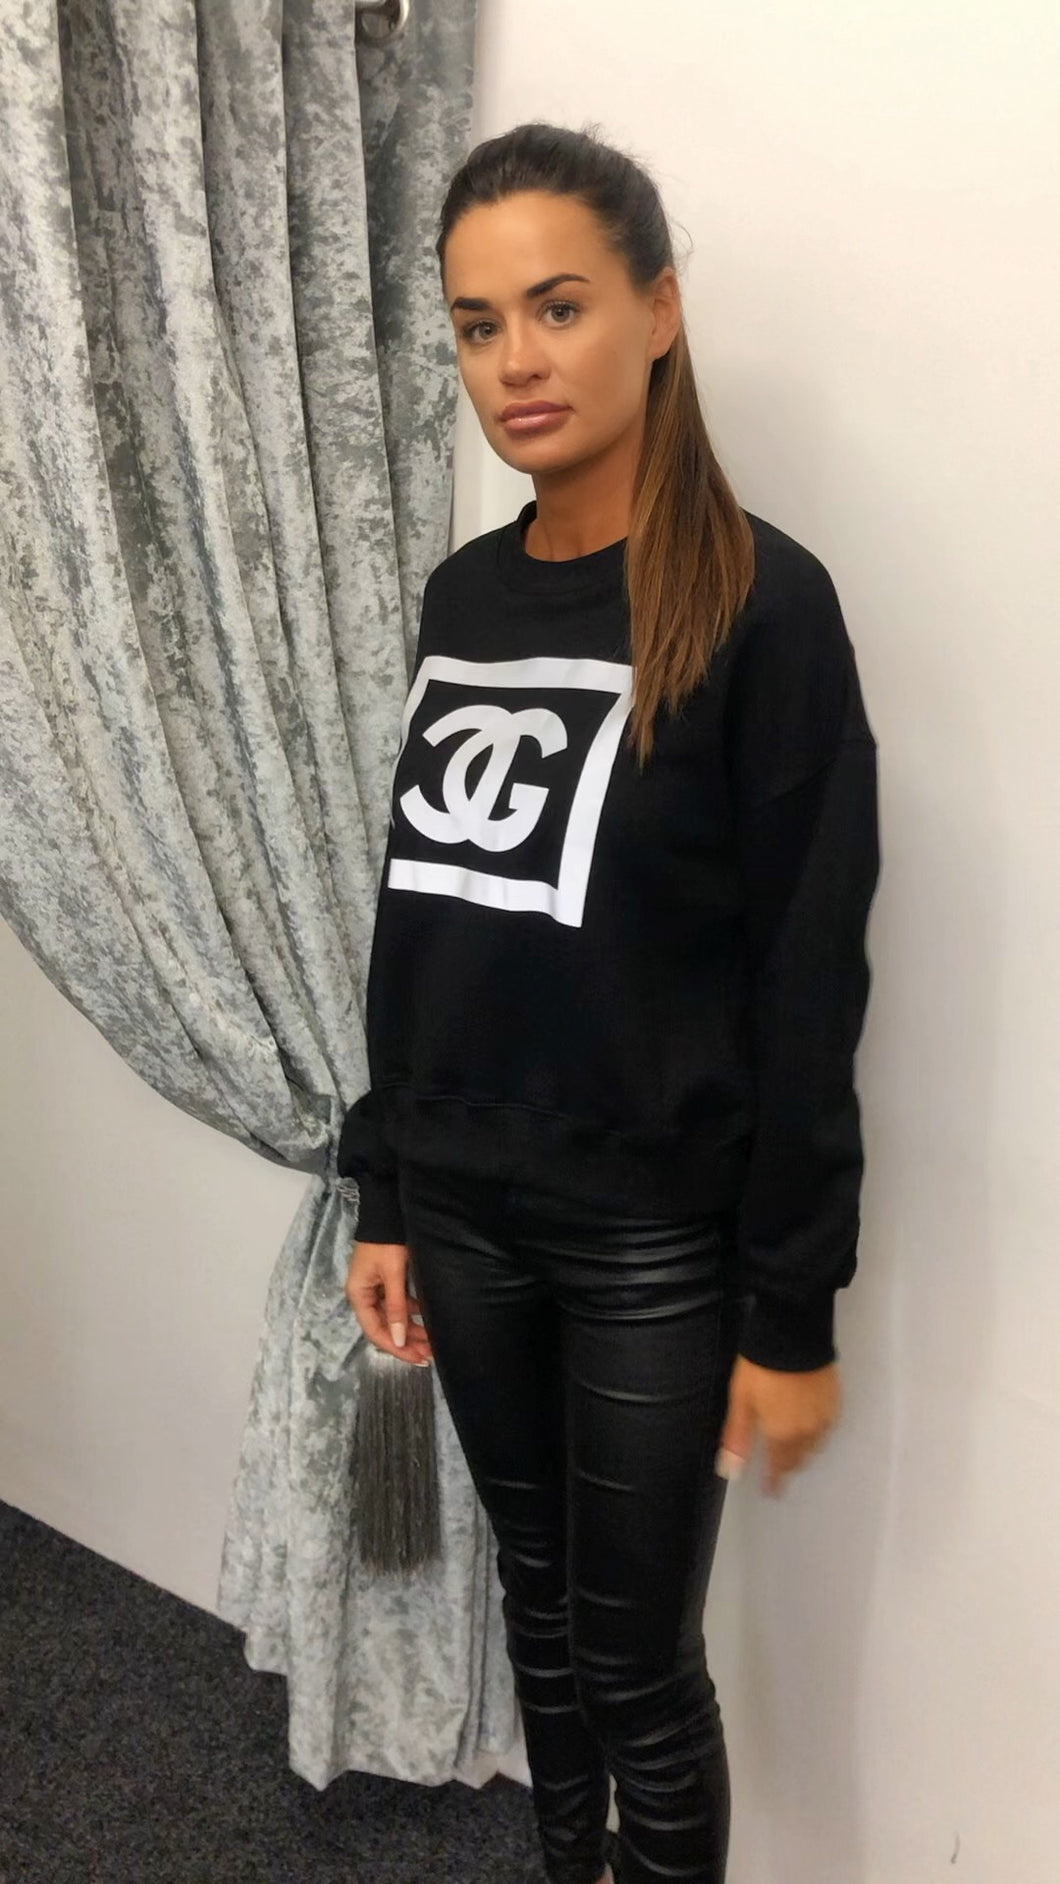 Black Chanel Sweatshirt